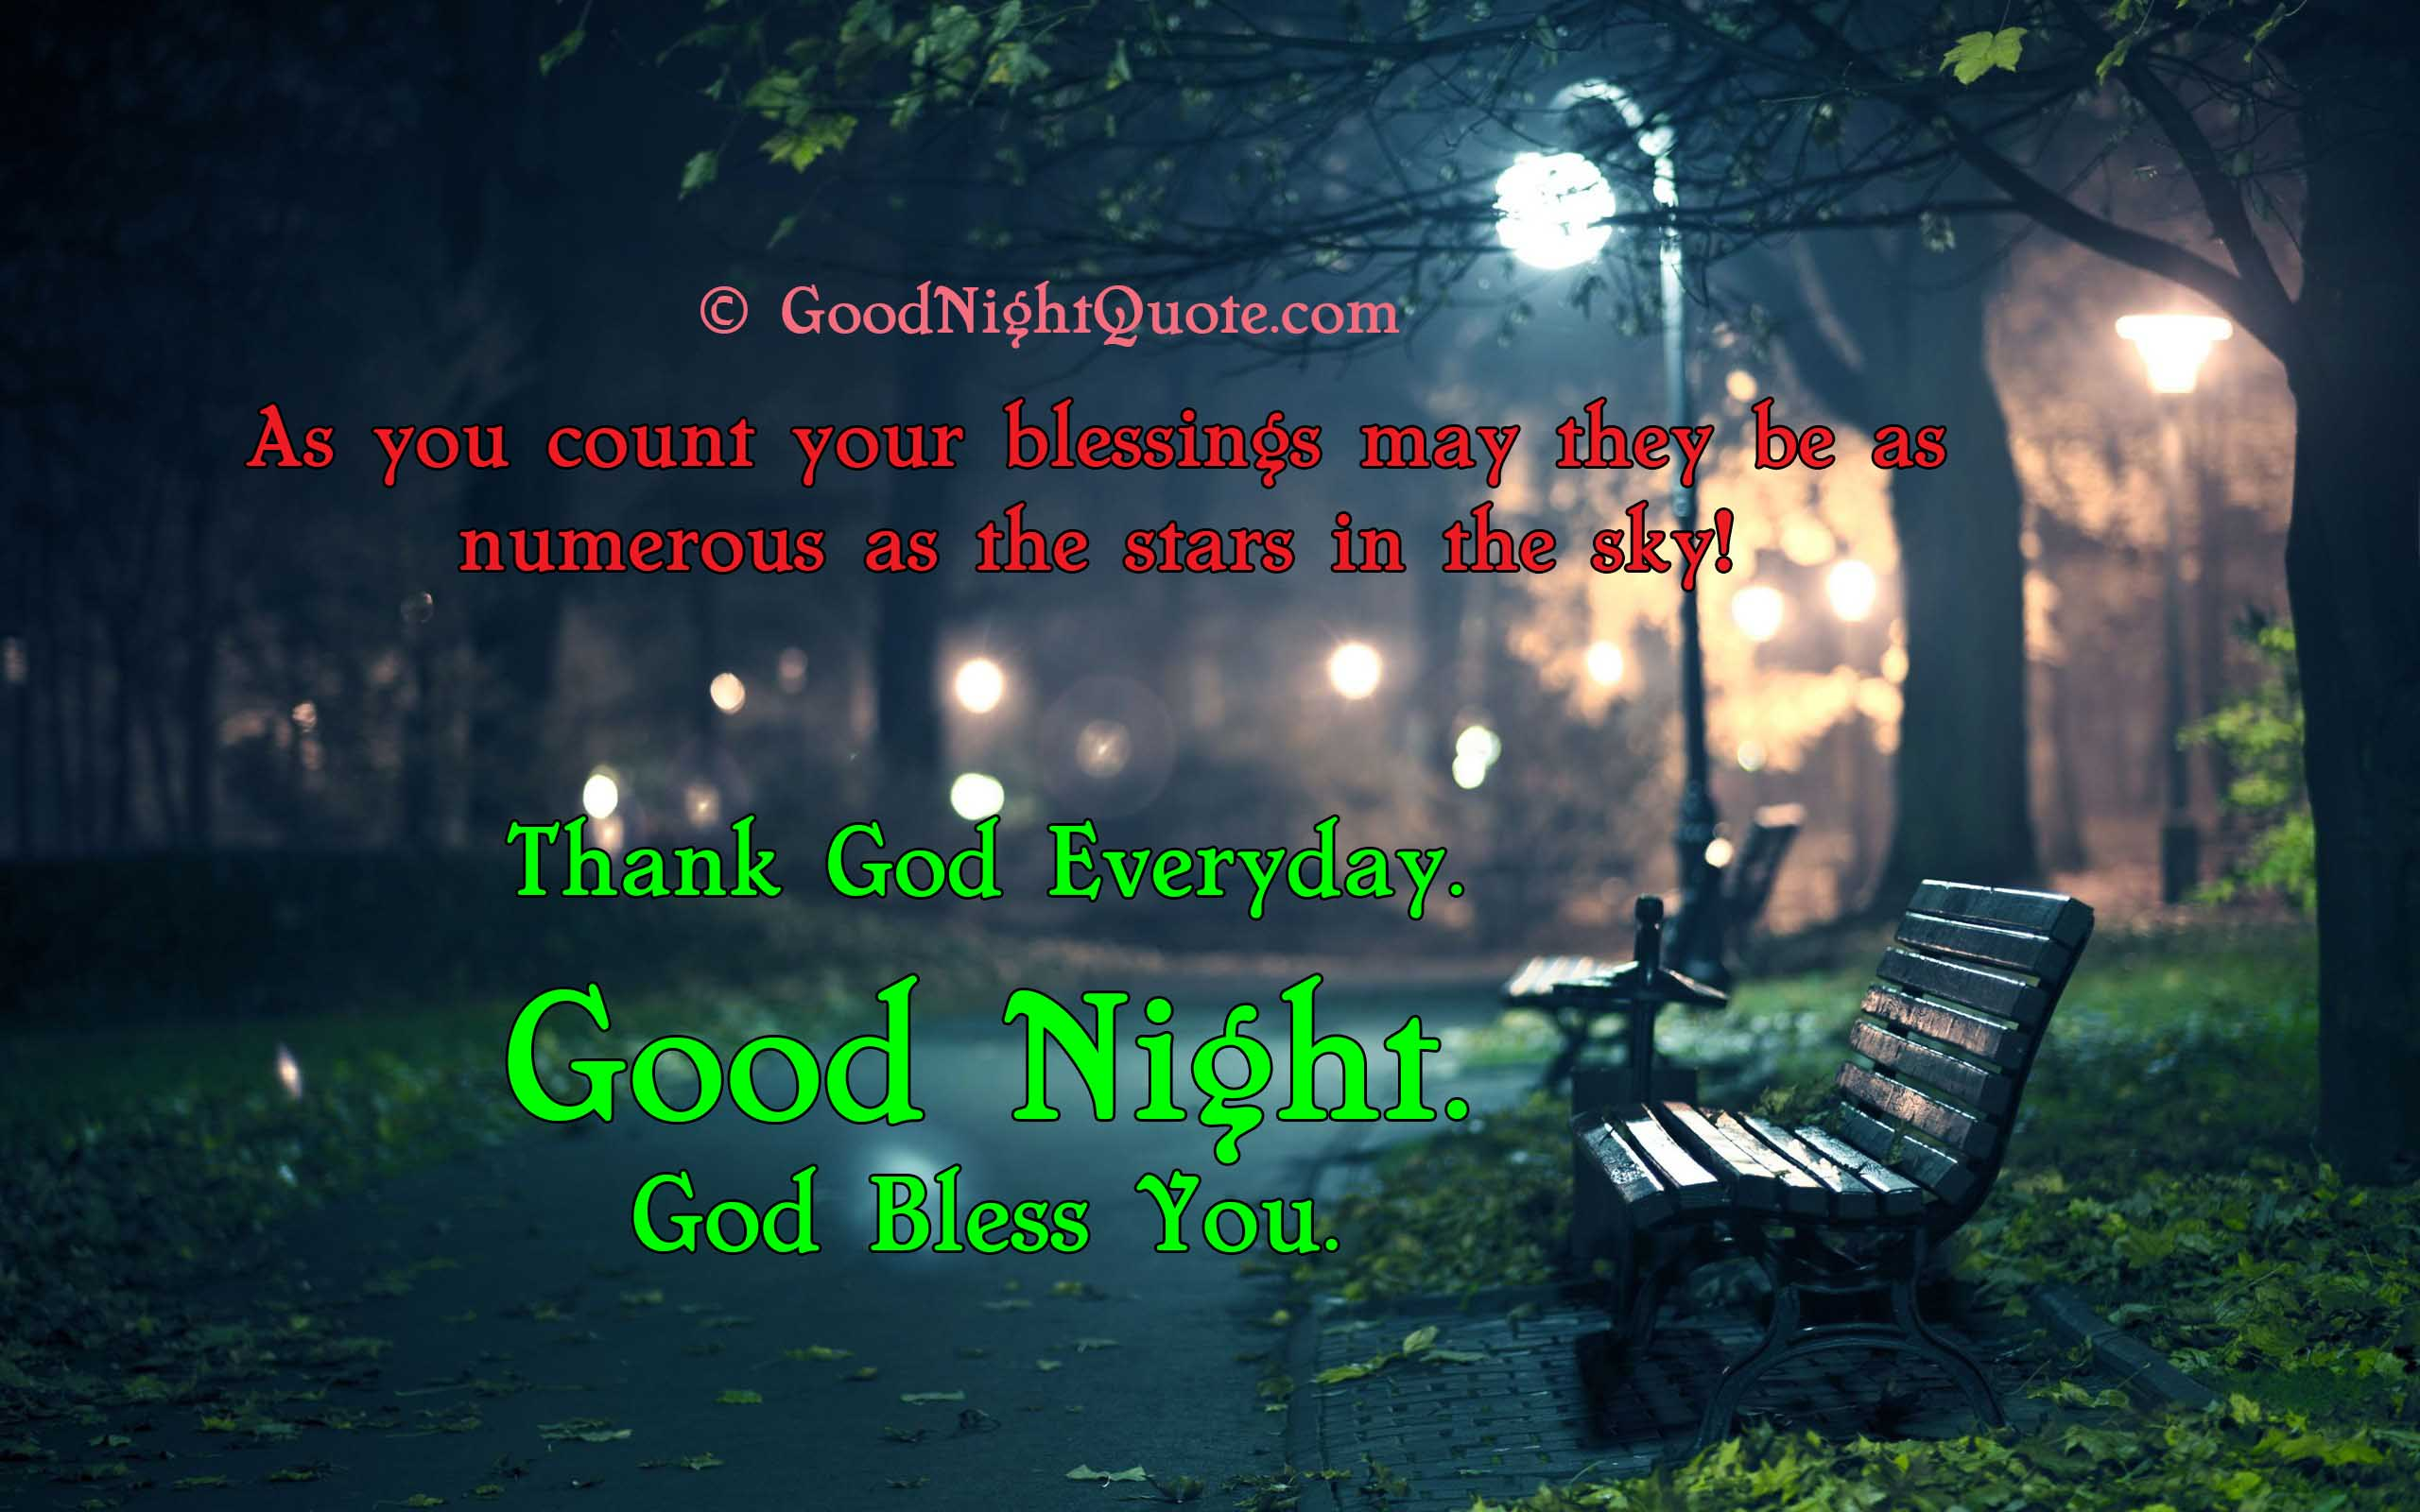 Quotes God Good Night  Sweet Dreams  God Bless You Prayer Quotes  Good